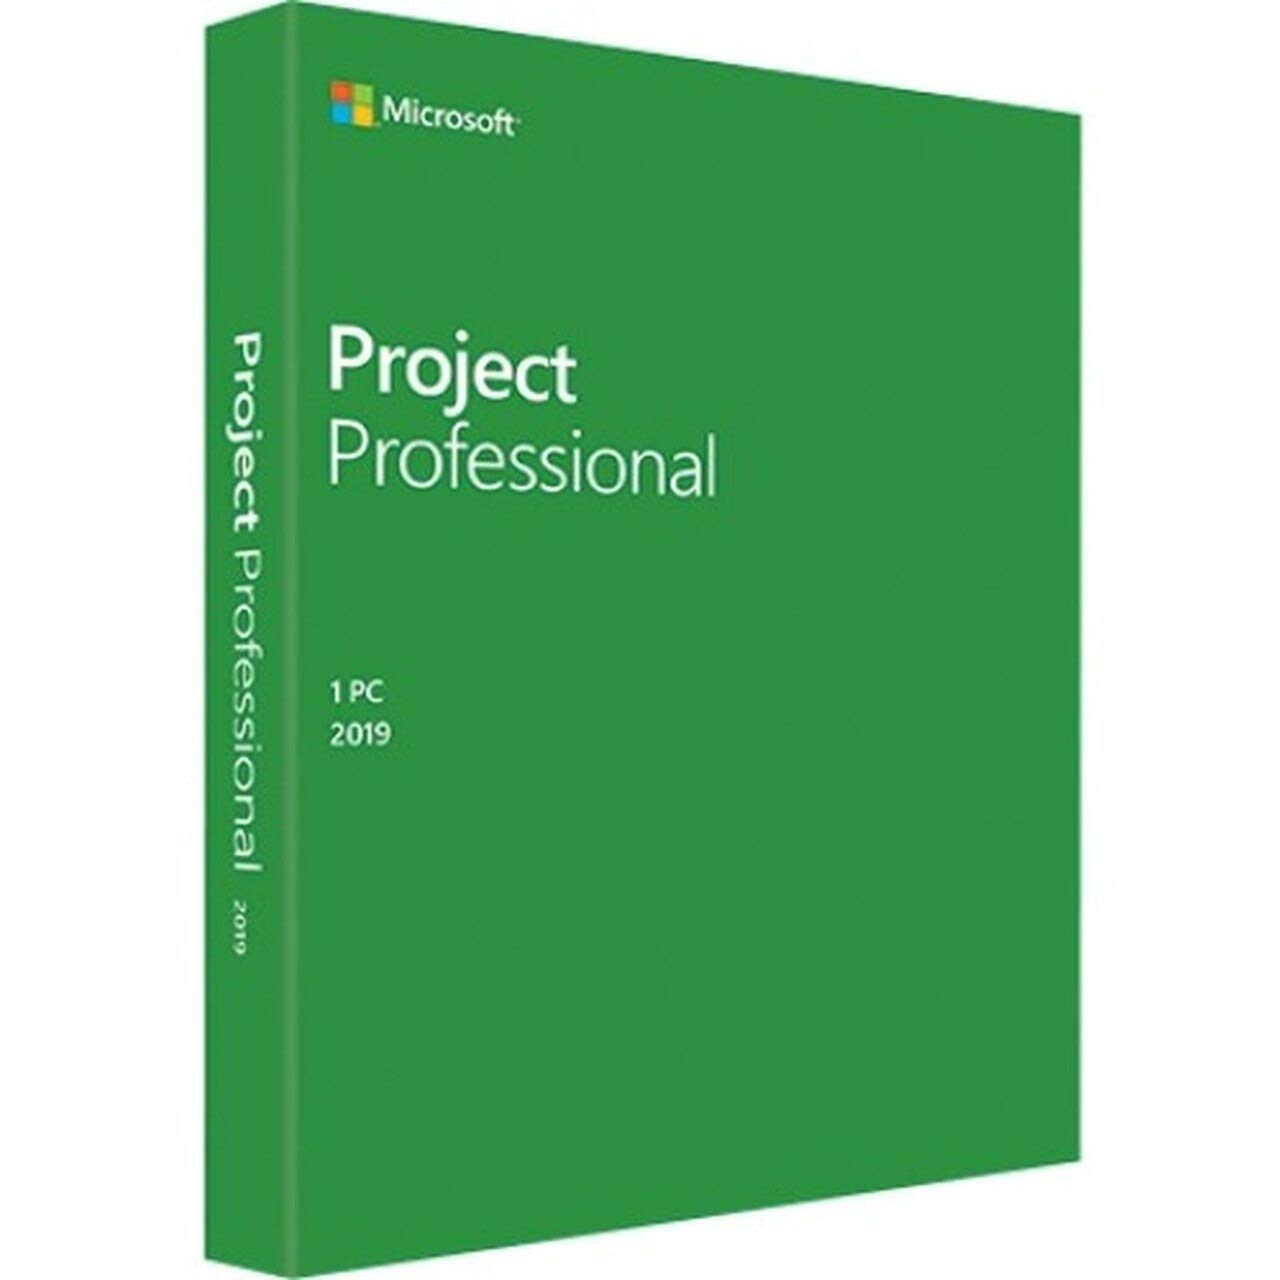 Microsoft Project Professional 2019 by Microsoft